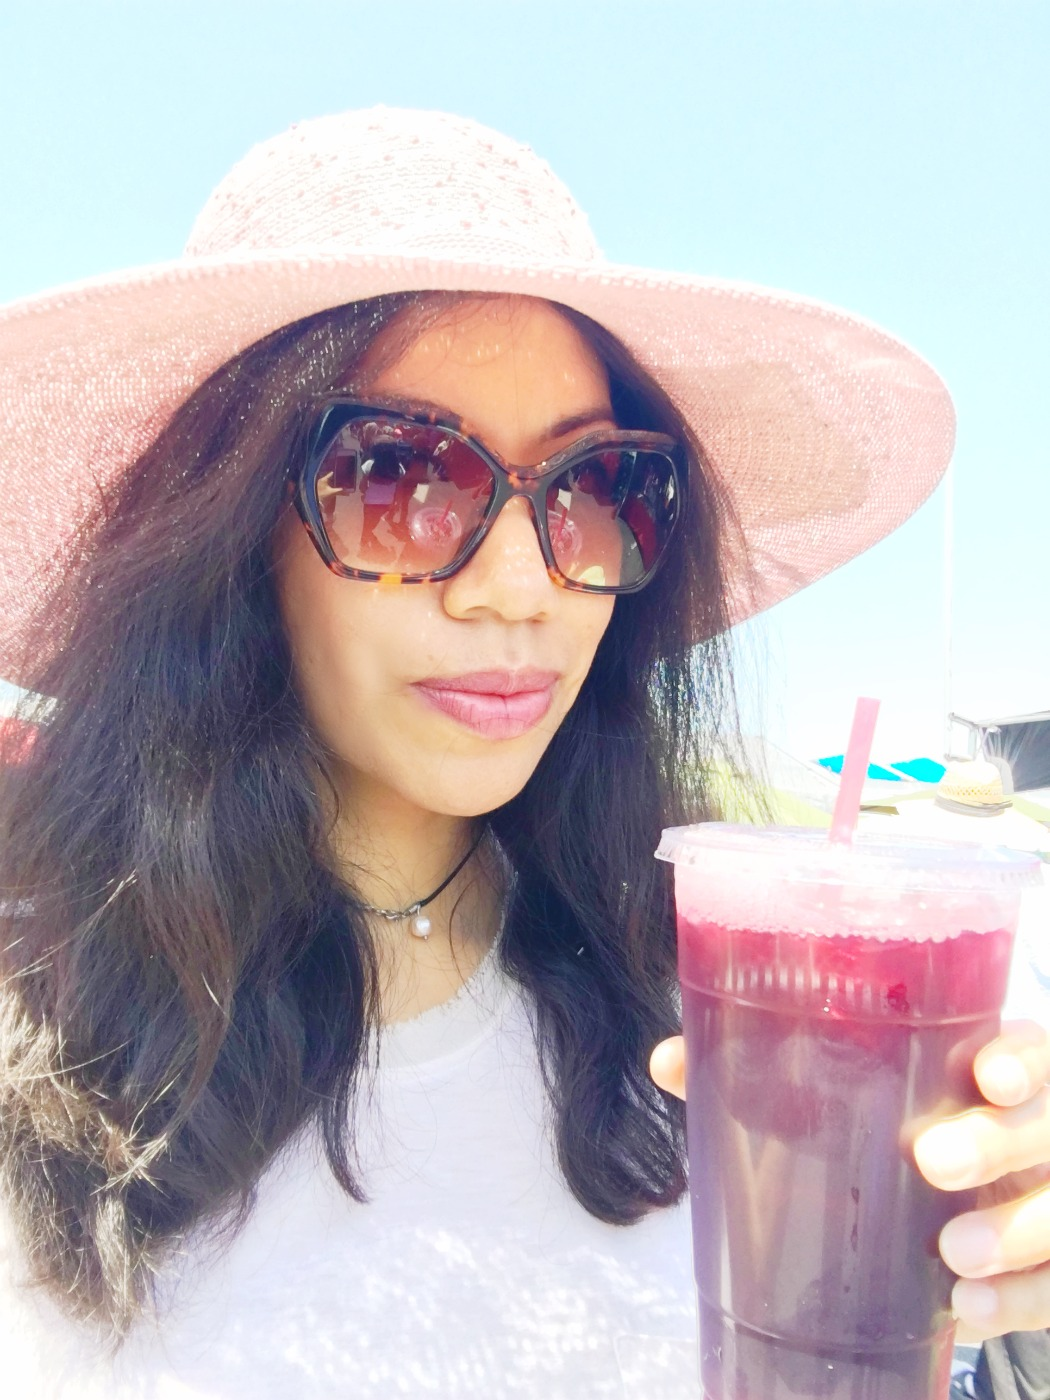 Drinking Jamaica agua Fresca at the swap meet - LivingMiVidaLoca.com